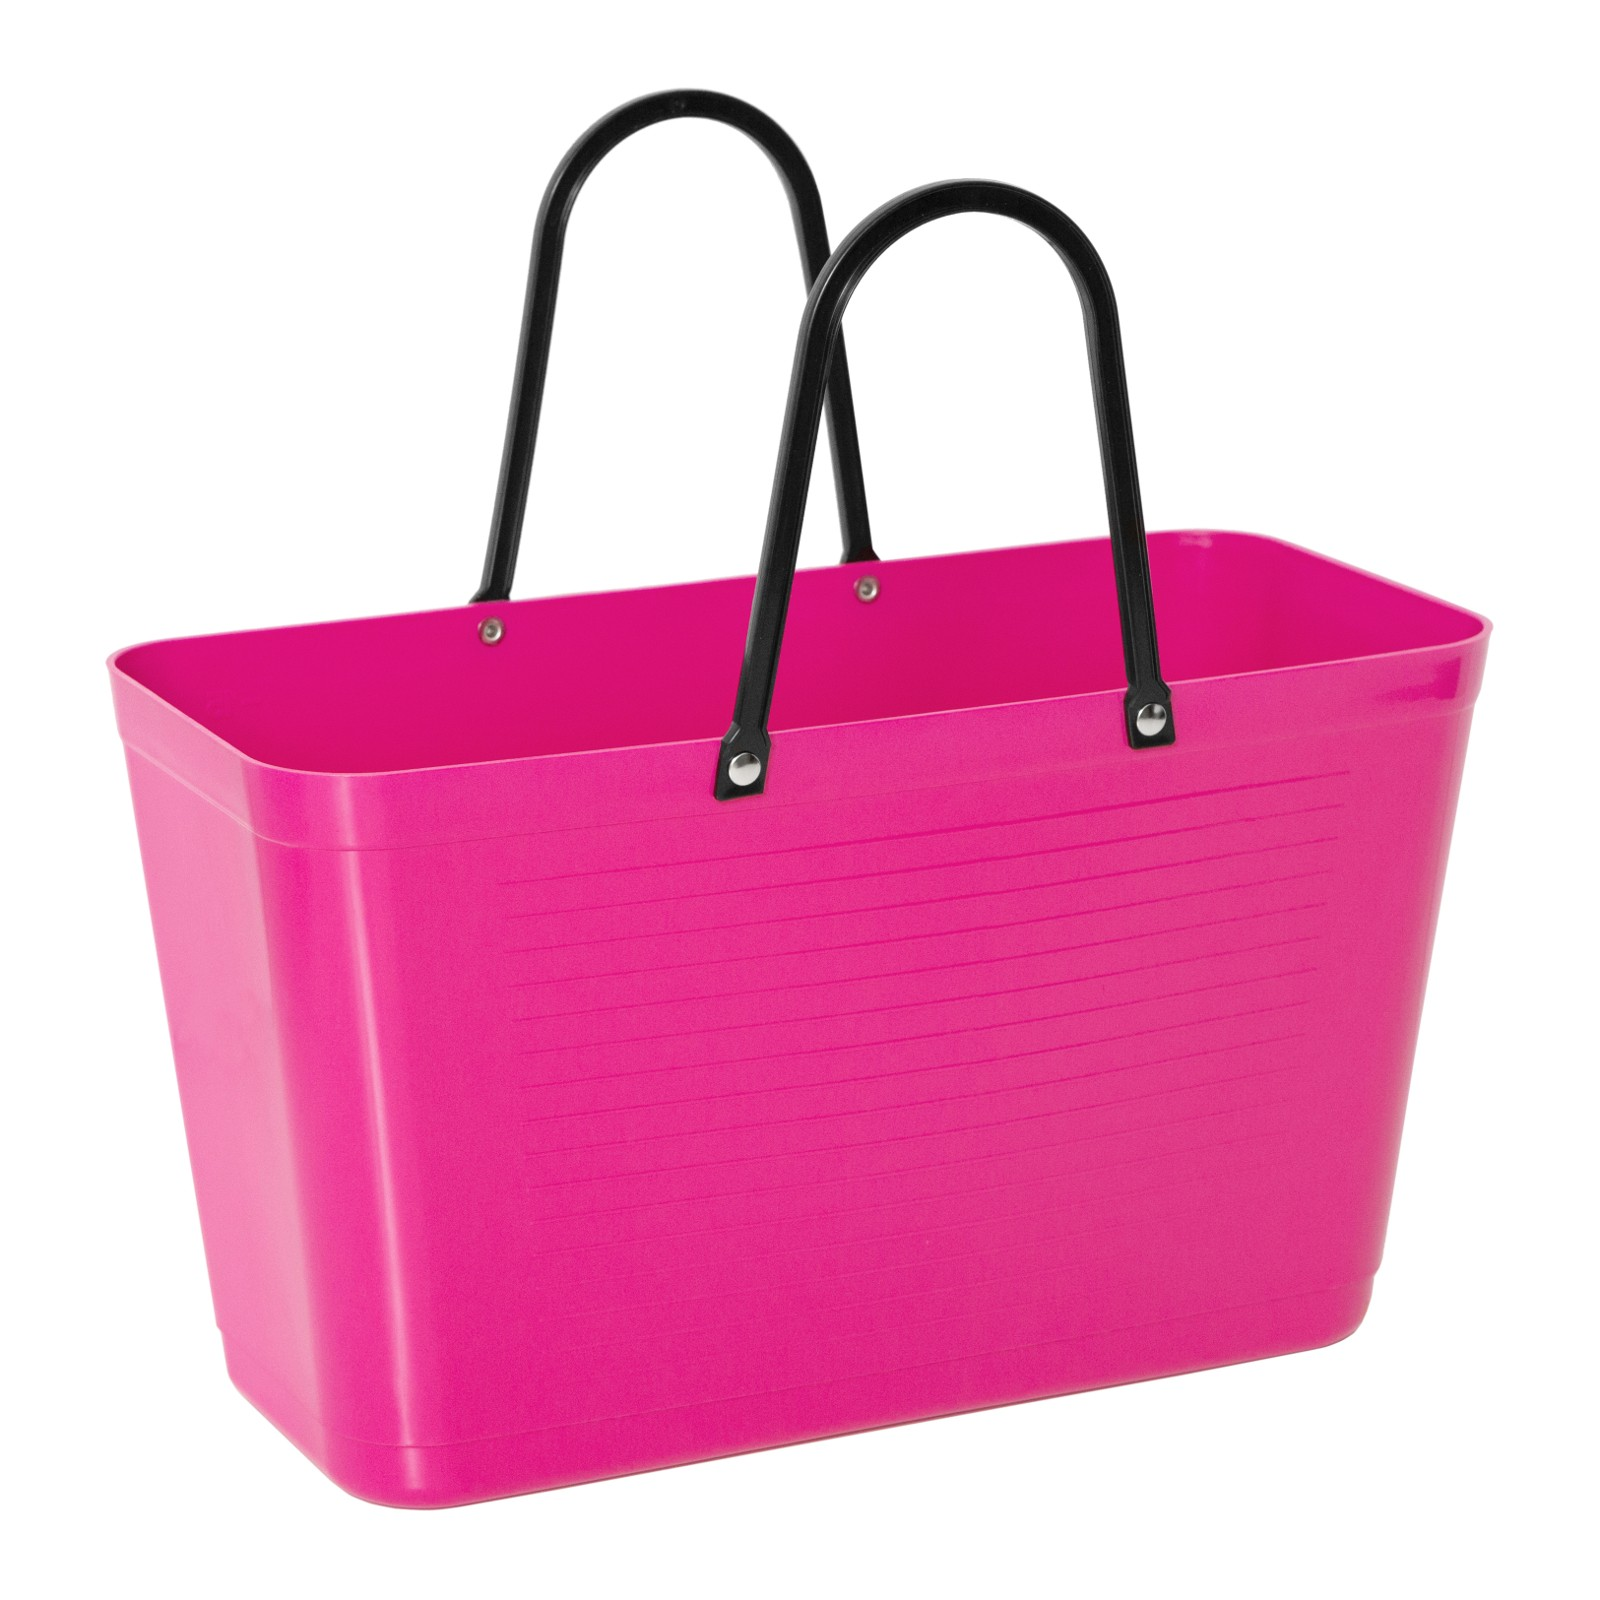 hinza 010-hinza-bag-large-hot-pink